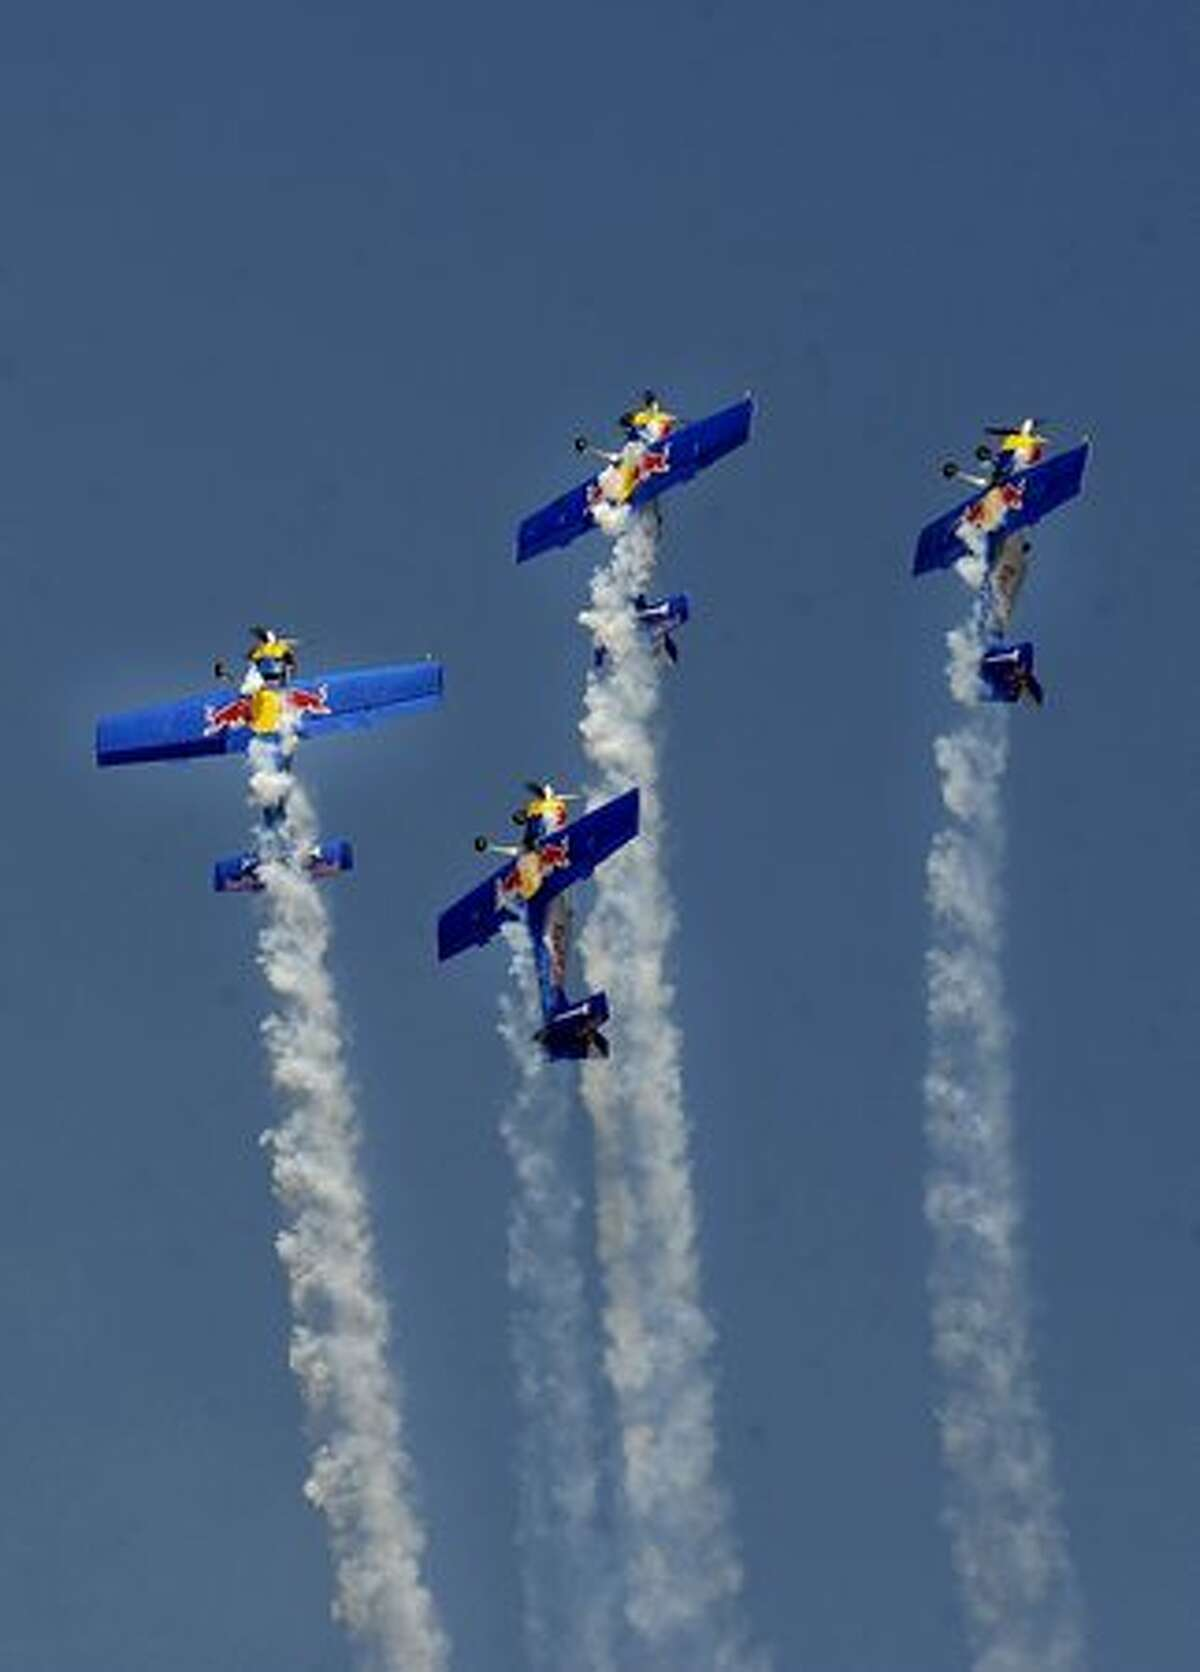 The Red Bull aerobatics team flies in formation on the eve of the Aero India 2011 exposition at the Yelhanka Air Force station in Bangalore.